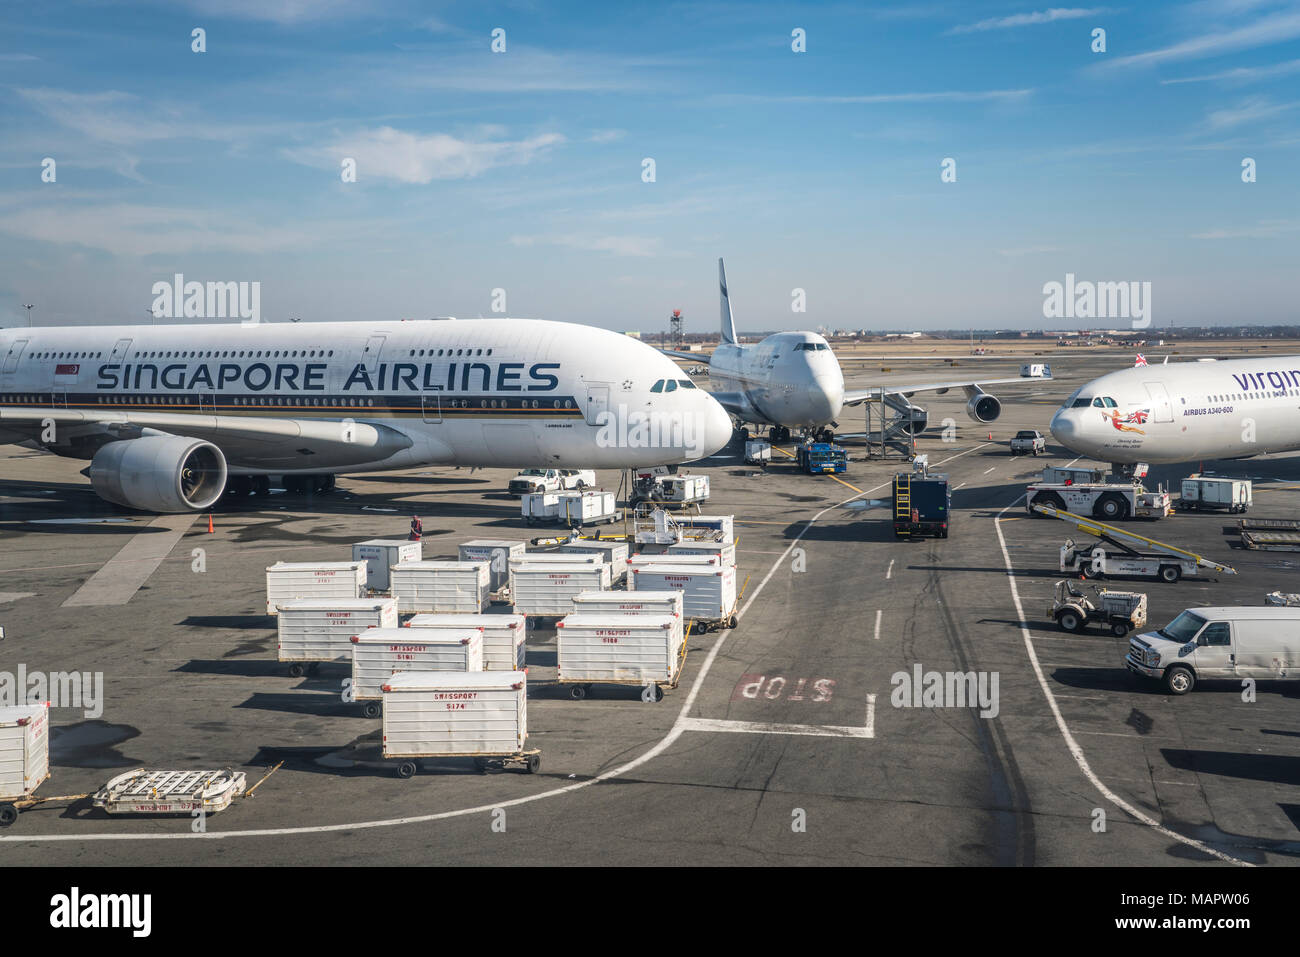 A singapore airlines passenger plane at jfk international airport in a singapore airlines passenger plane at jfk international airport in new york ny usa publicscrutiny Gallery